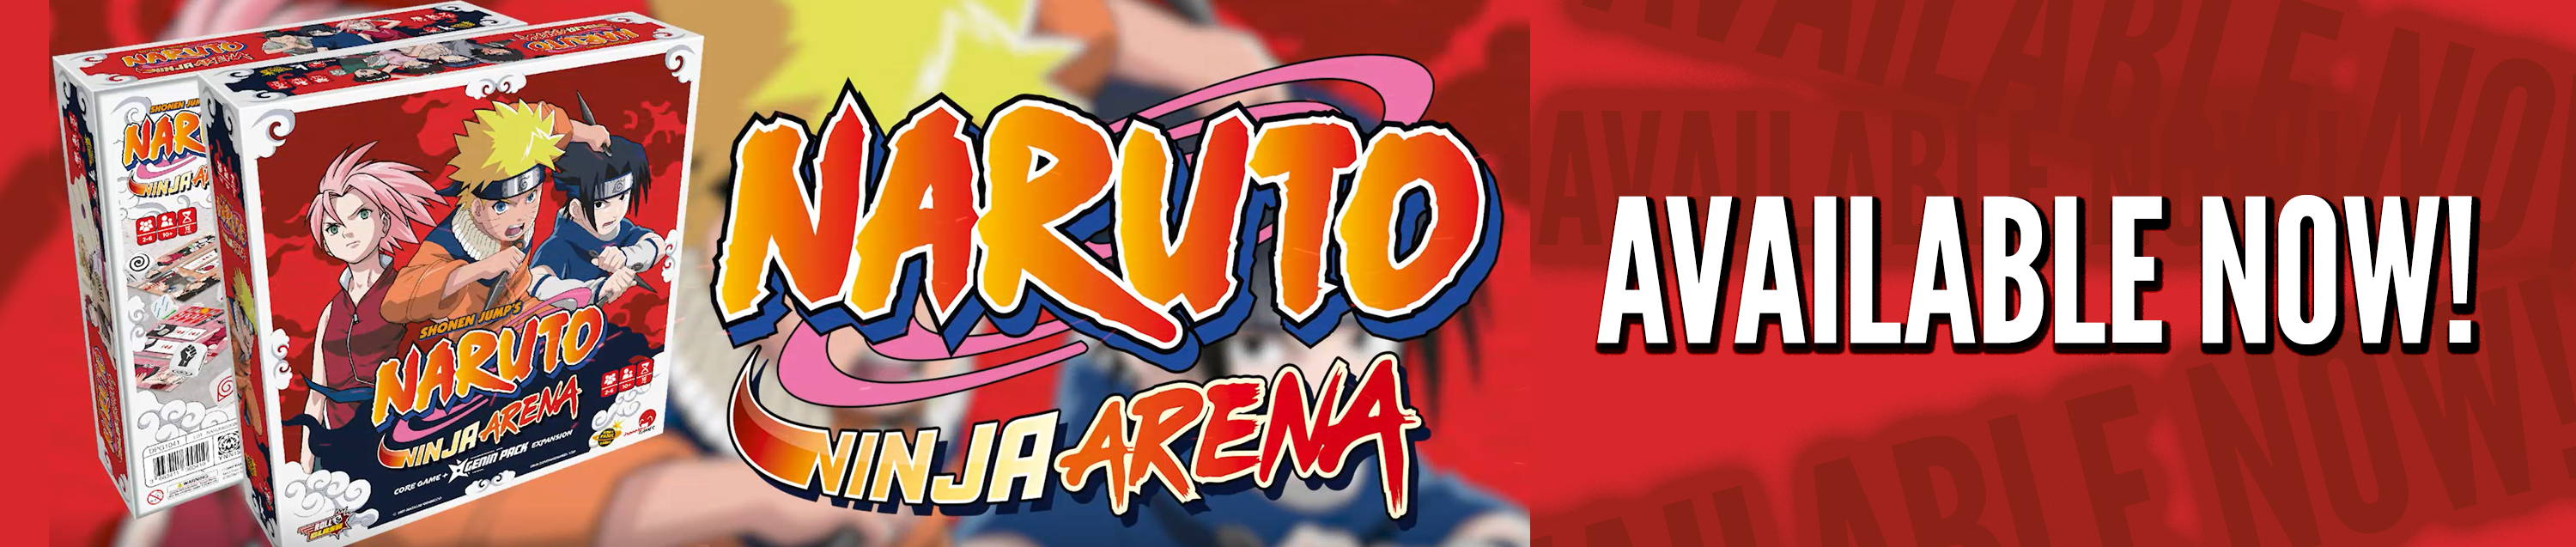 Naruto Available now home page slider